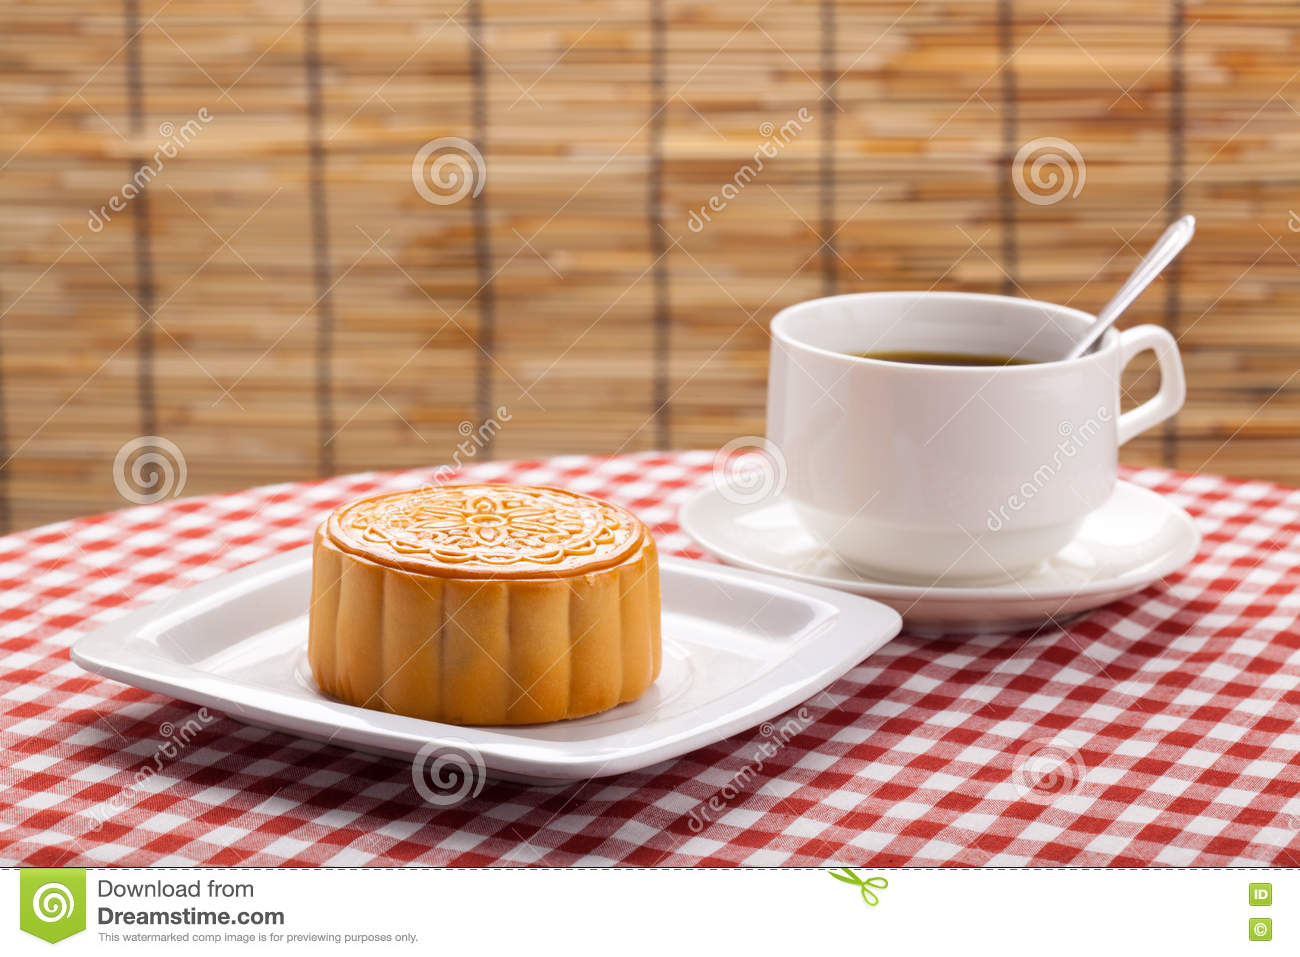 Chinese table setting - Traditional Chinese Moon Cakes On Table Setting With Teacup Stock Phototraditional Chinese Moon Cakes On Table